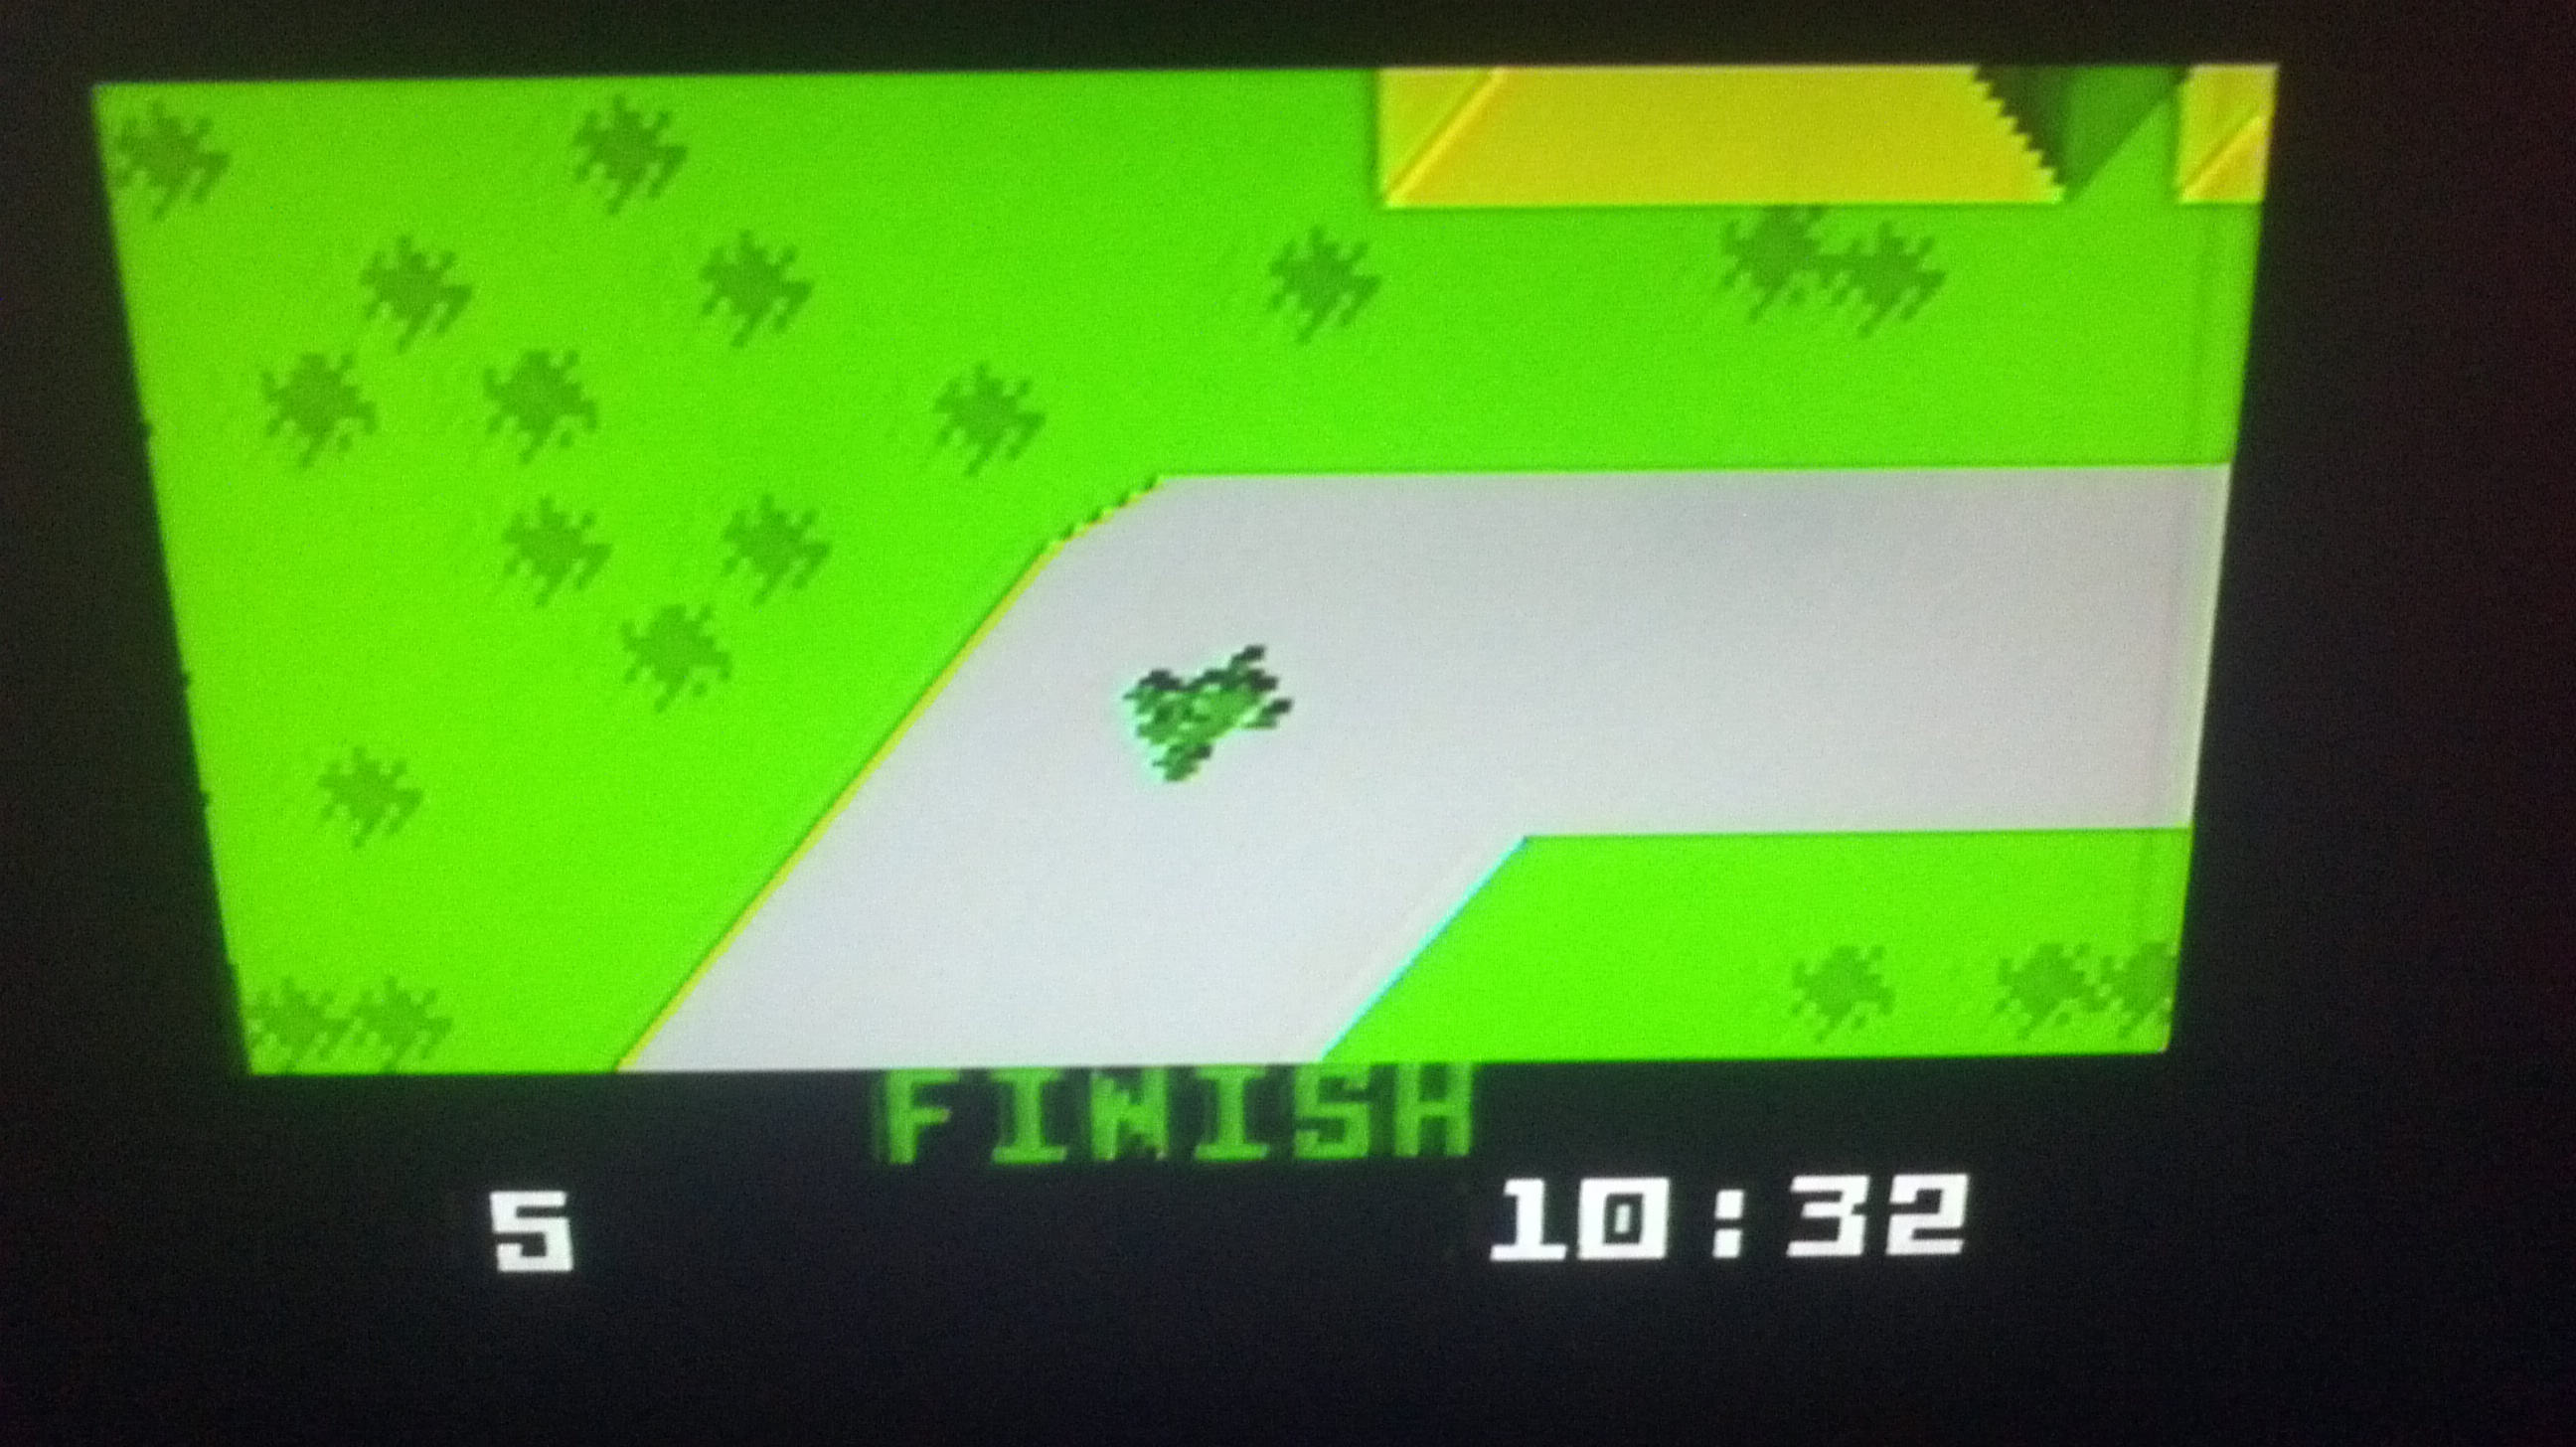 Auto Racing [Original]: Course 4 time of 0:10:32